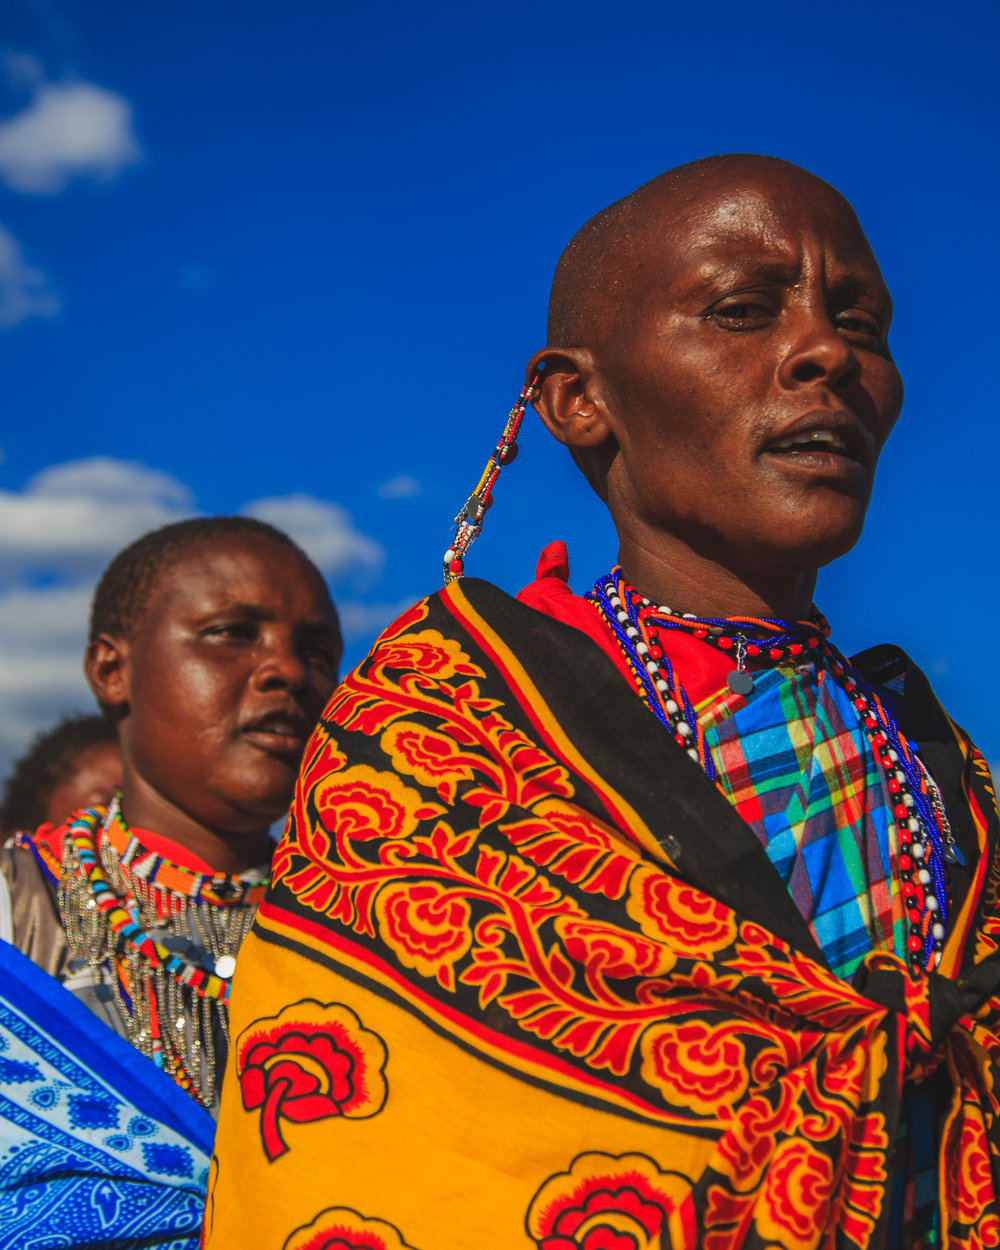 A mother, a leader, a Maasai Warrior leads a celebration with her fellow community mothers in honor of their daughters graduating high school and being the first women in the community to receive a high school education.